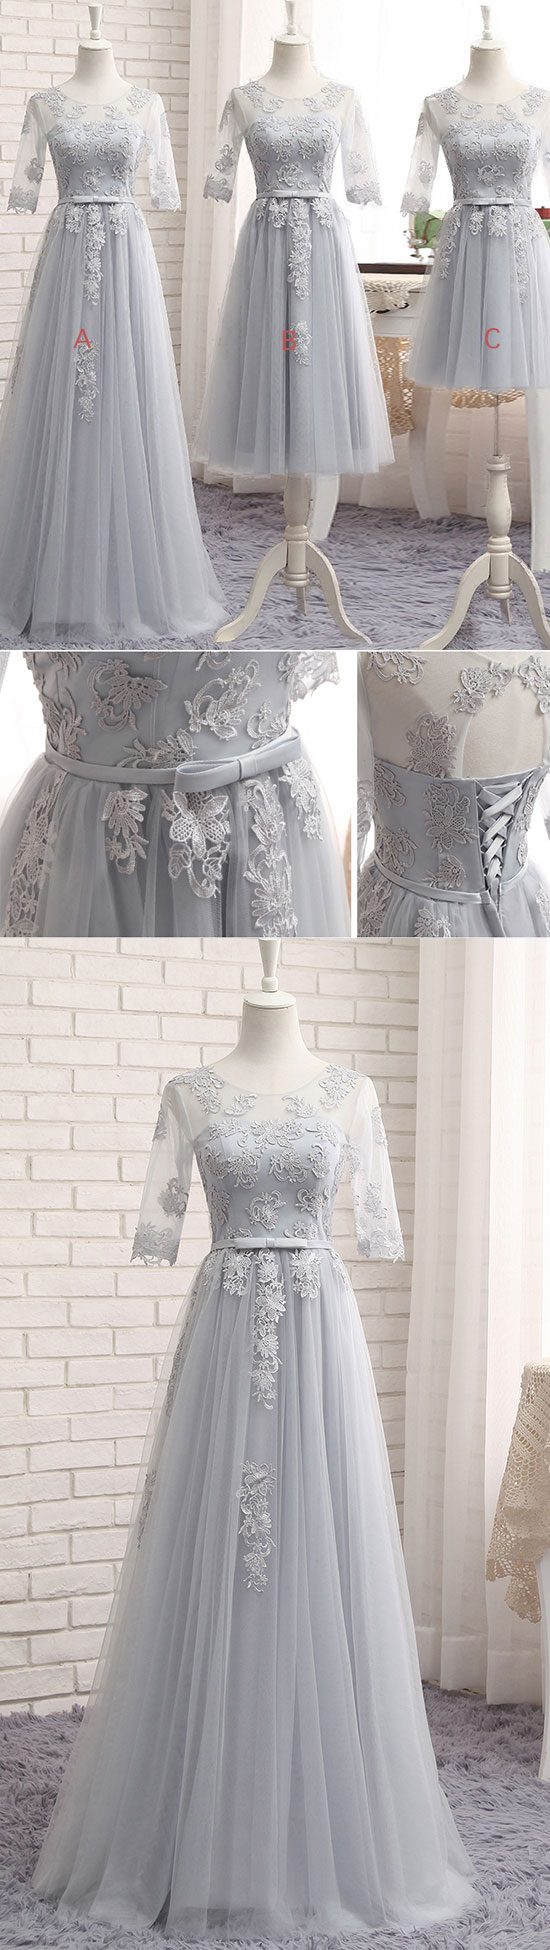 Gray dress for wedding party  Gray tulle lace long prom dress gray bridesmaid dress  Grey